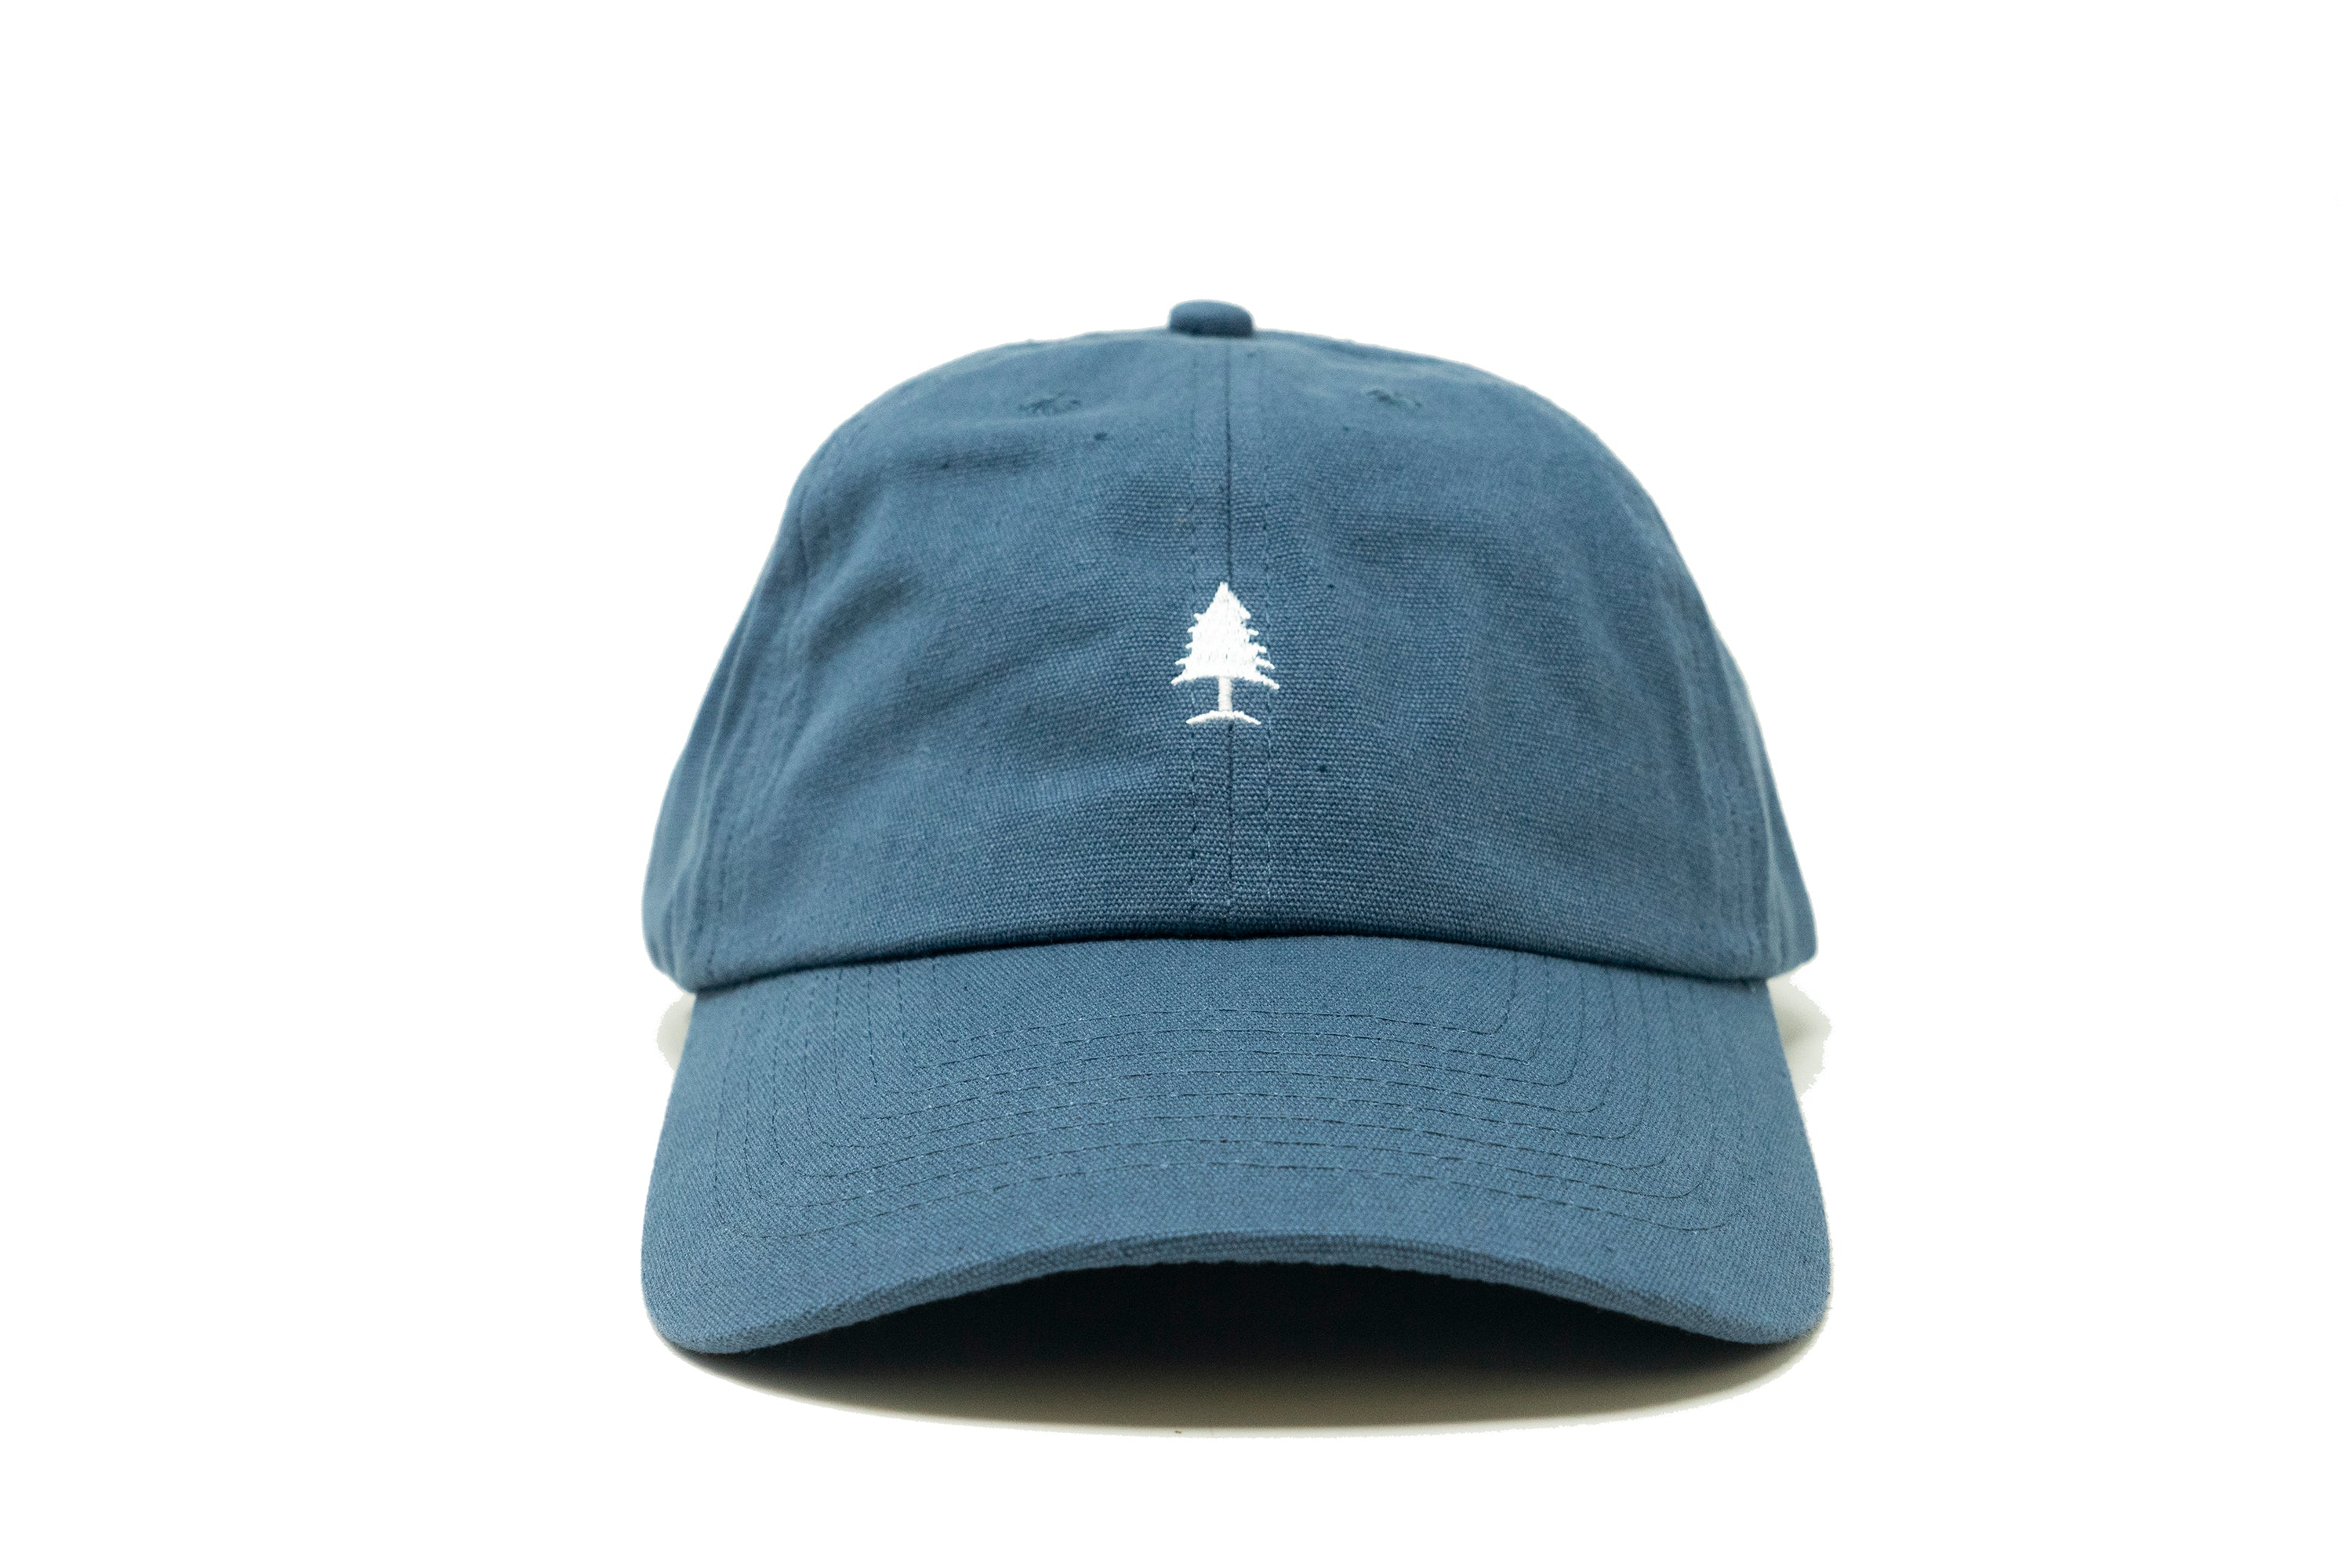 The Blue Timeless Hat